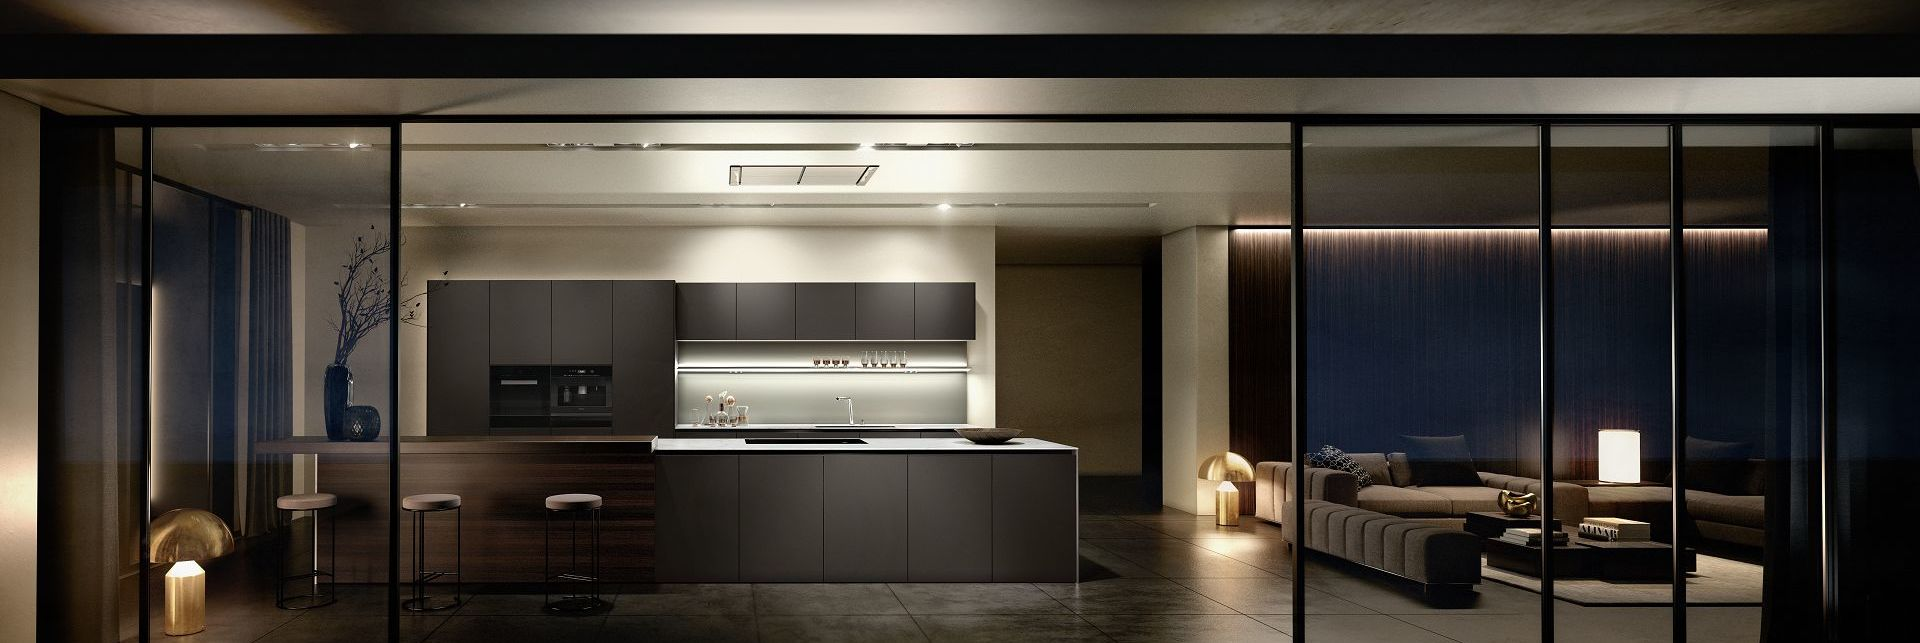 SieMatic Pure S2 SE kitchen island with prep area as well as raised breakfast bar in smoked oak